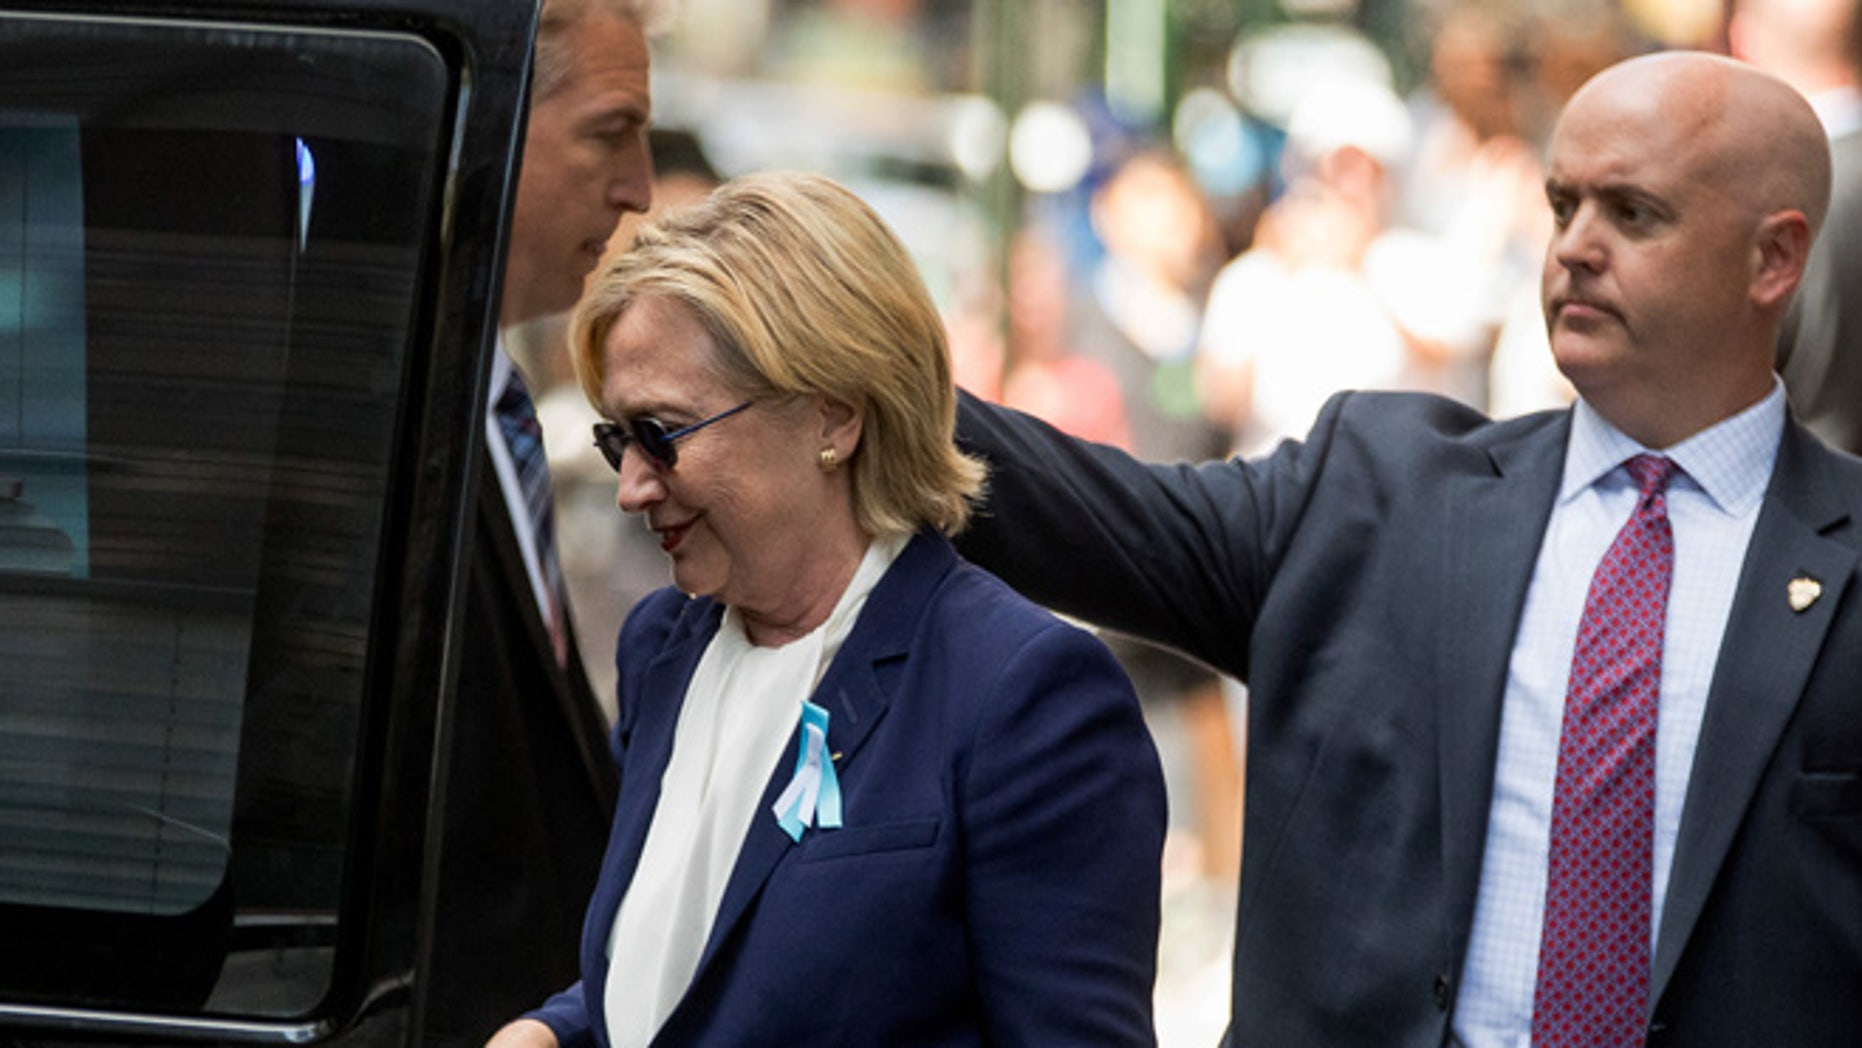 Presidential candidate Hillary Clinton leaves an apartment building Sunday, Sept. 11, 2016, in New York.